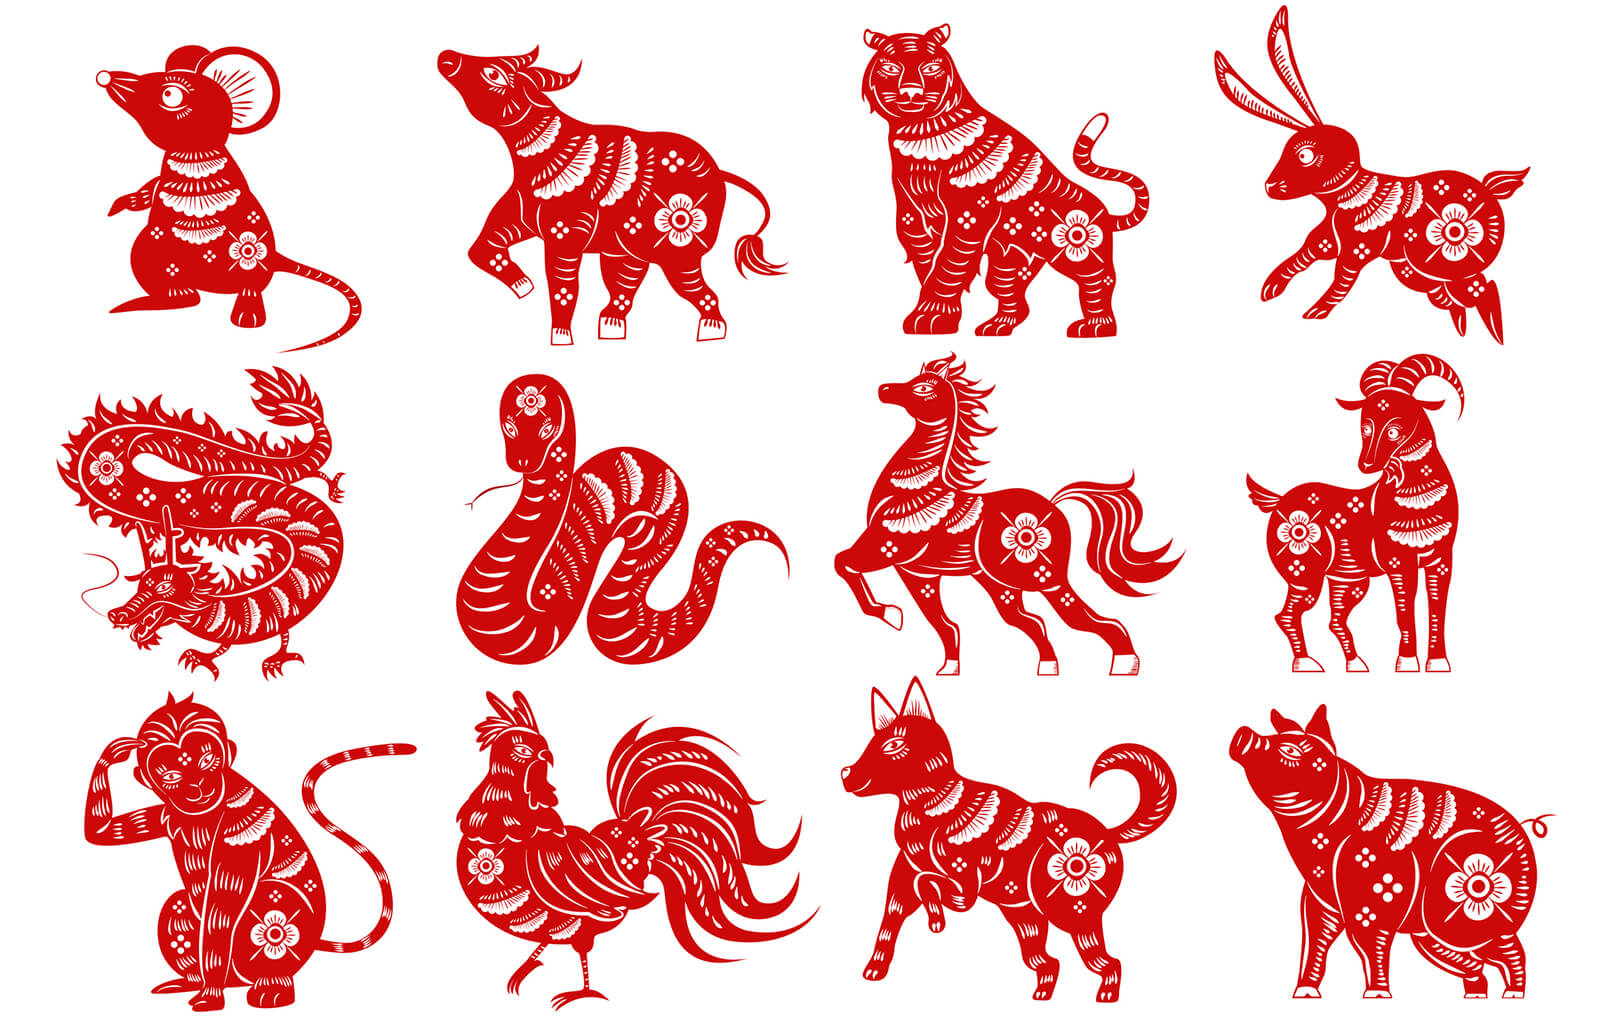 12 Chinese Zodiac Signs | Lovetoknow